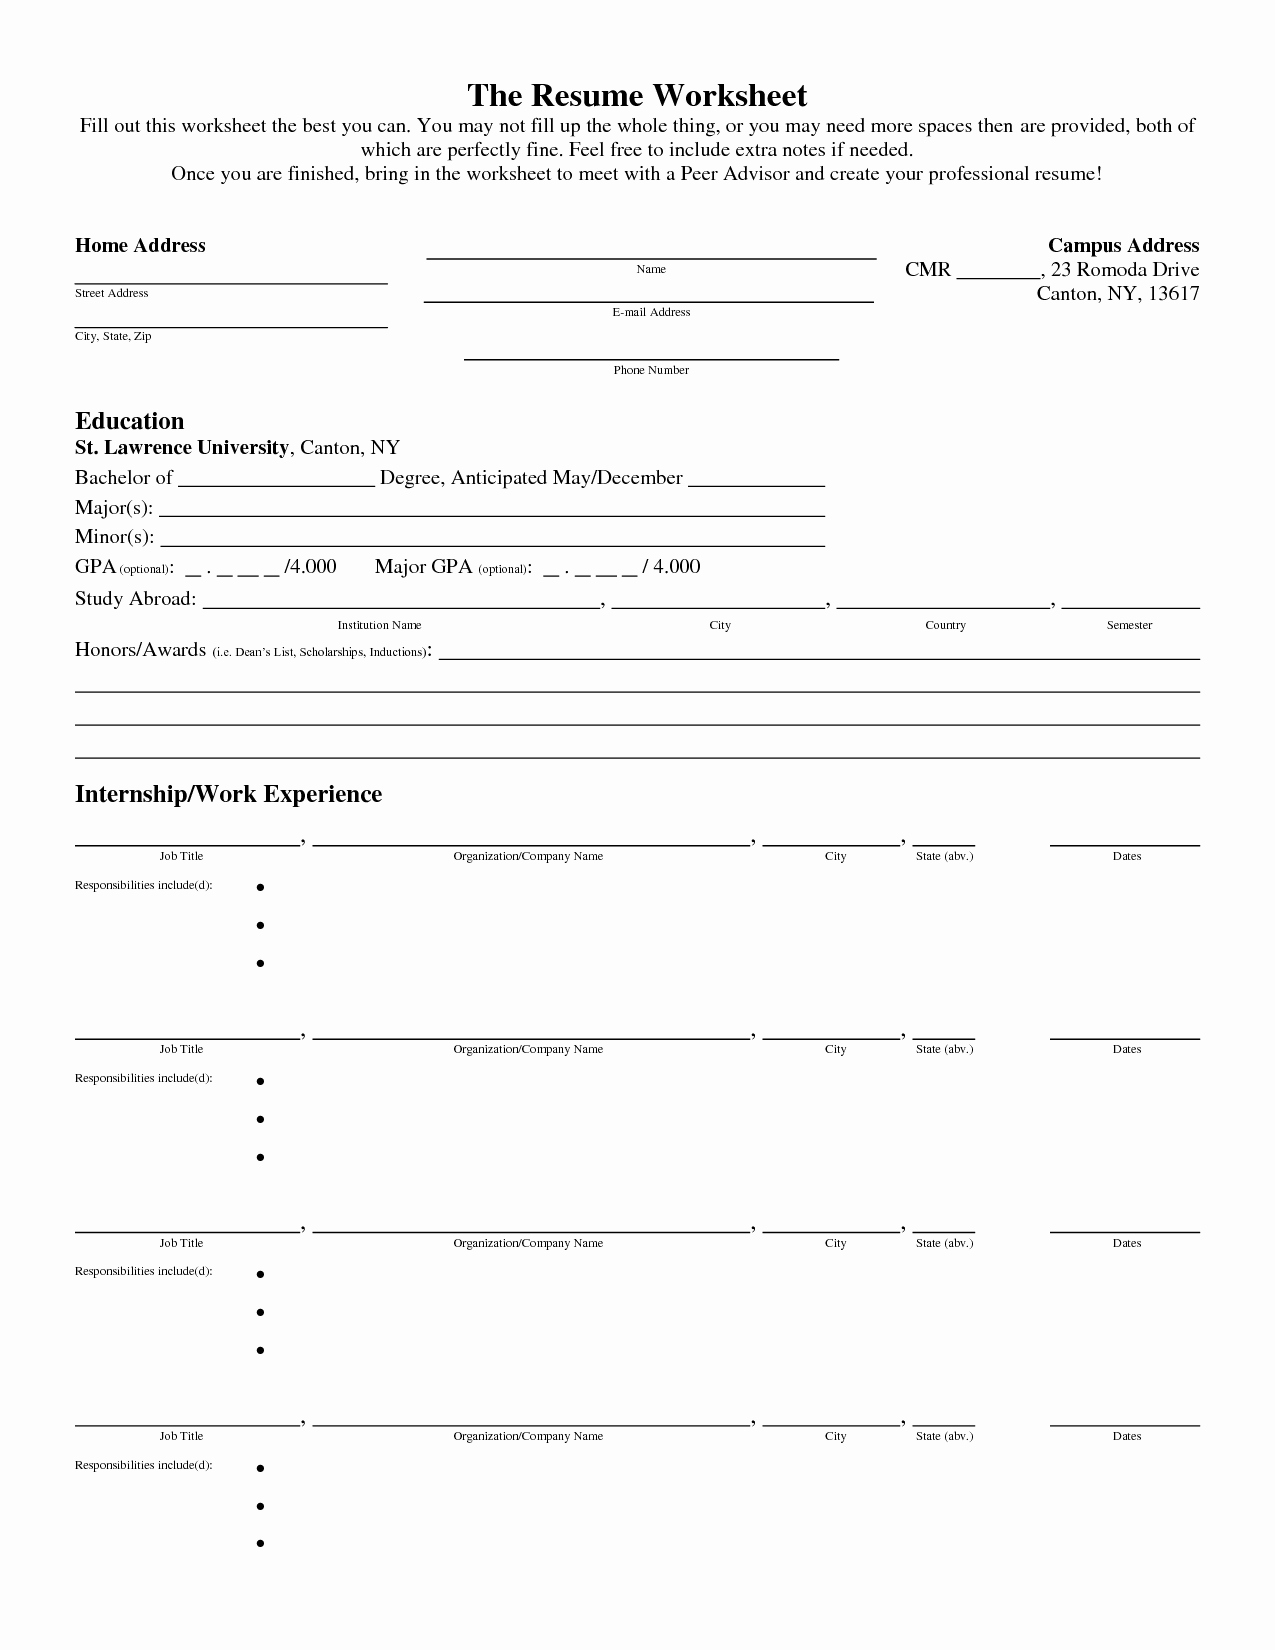 17 Best Of Creating A Resume Worksheet Fill In